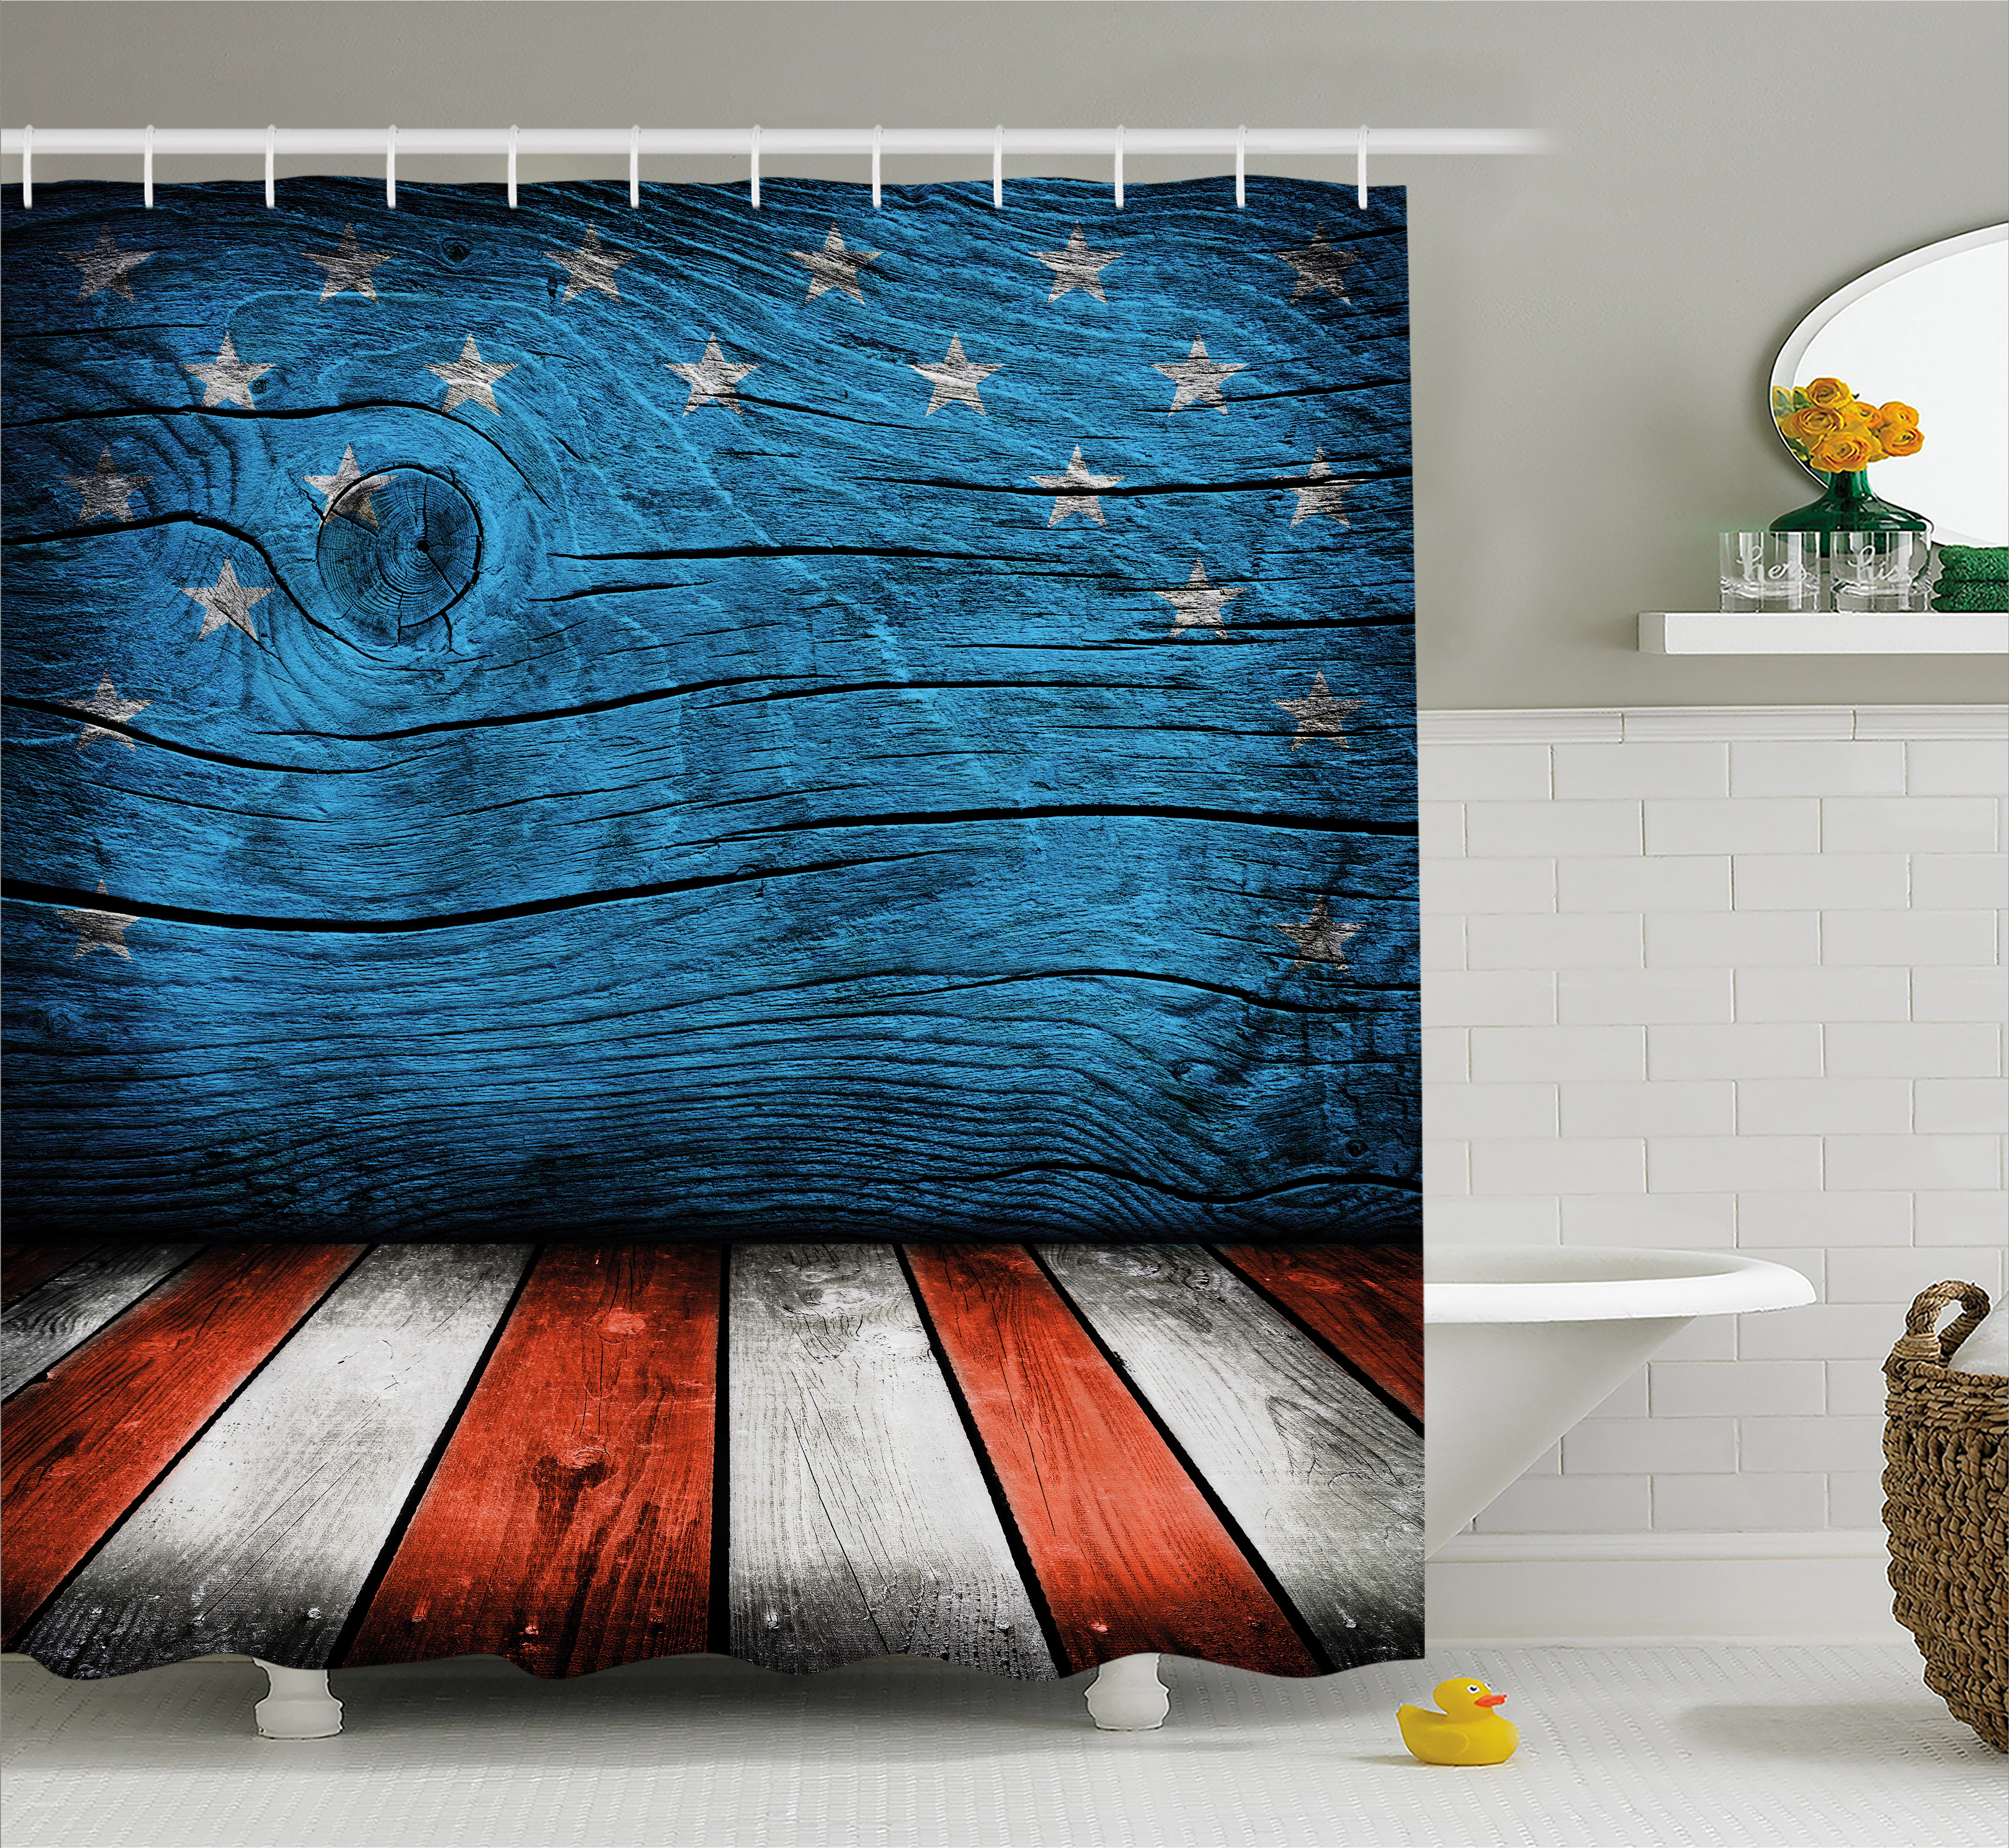 Primitive Country Decor Shower Curtain, Rustic Empty Wooden Interior with American Flag Design Print, Fabric Bathroom Set with Hooks, 69W X 70L Inches, Blue Red White, by Ambesonne